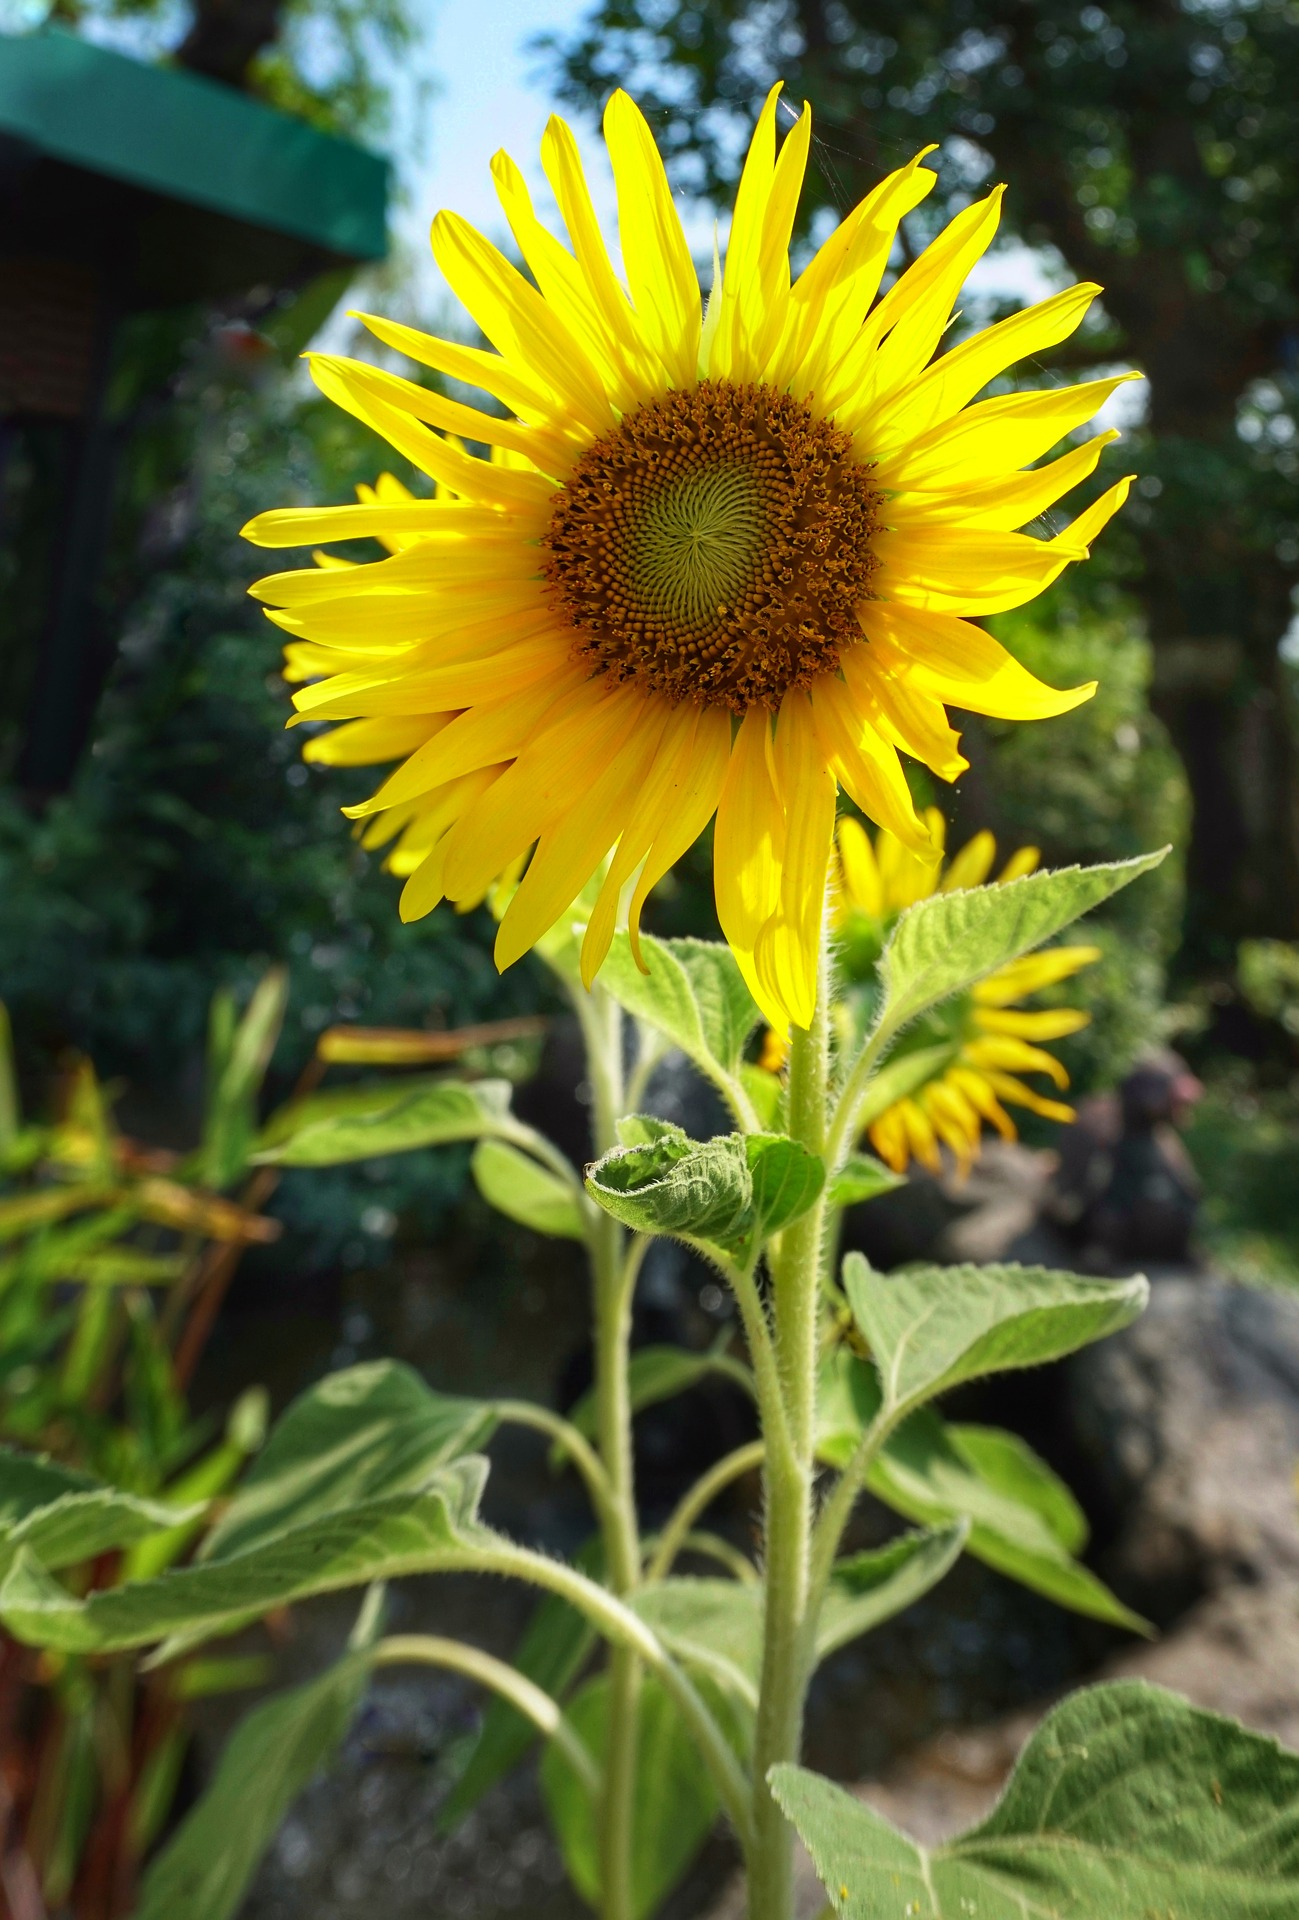 Sunflower Head For Seeds